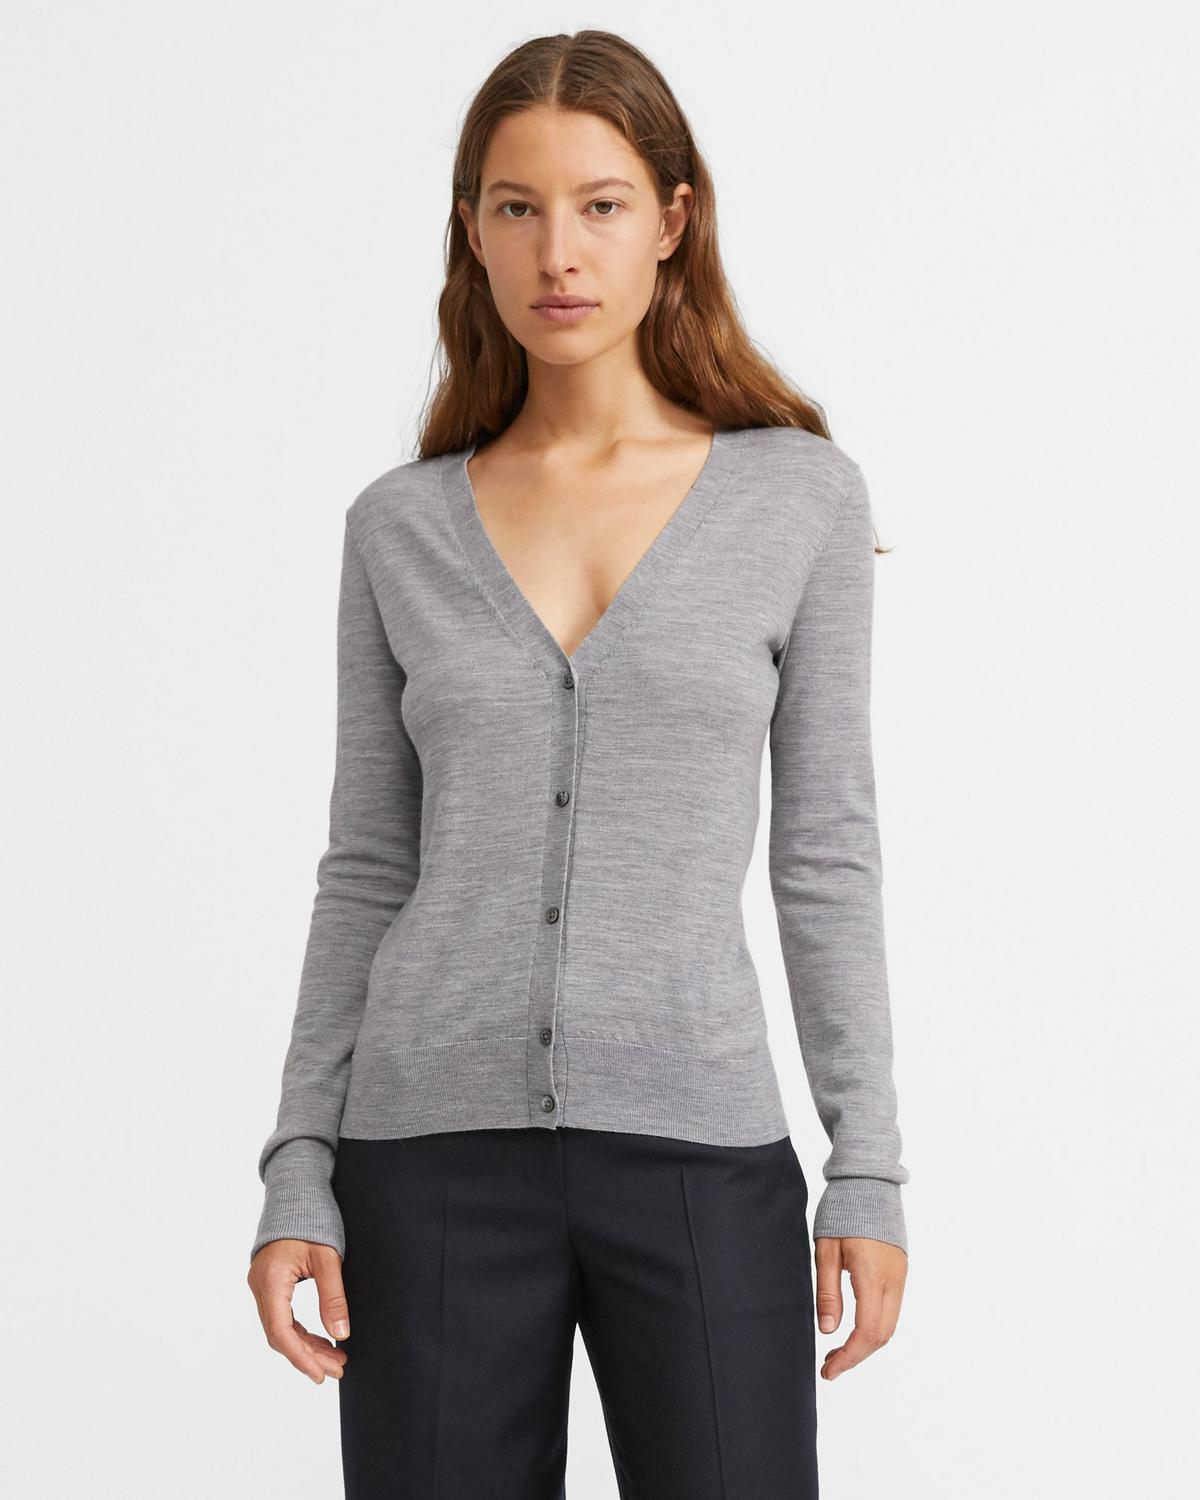 Regal Wool V-Neck Cardigan